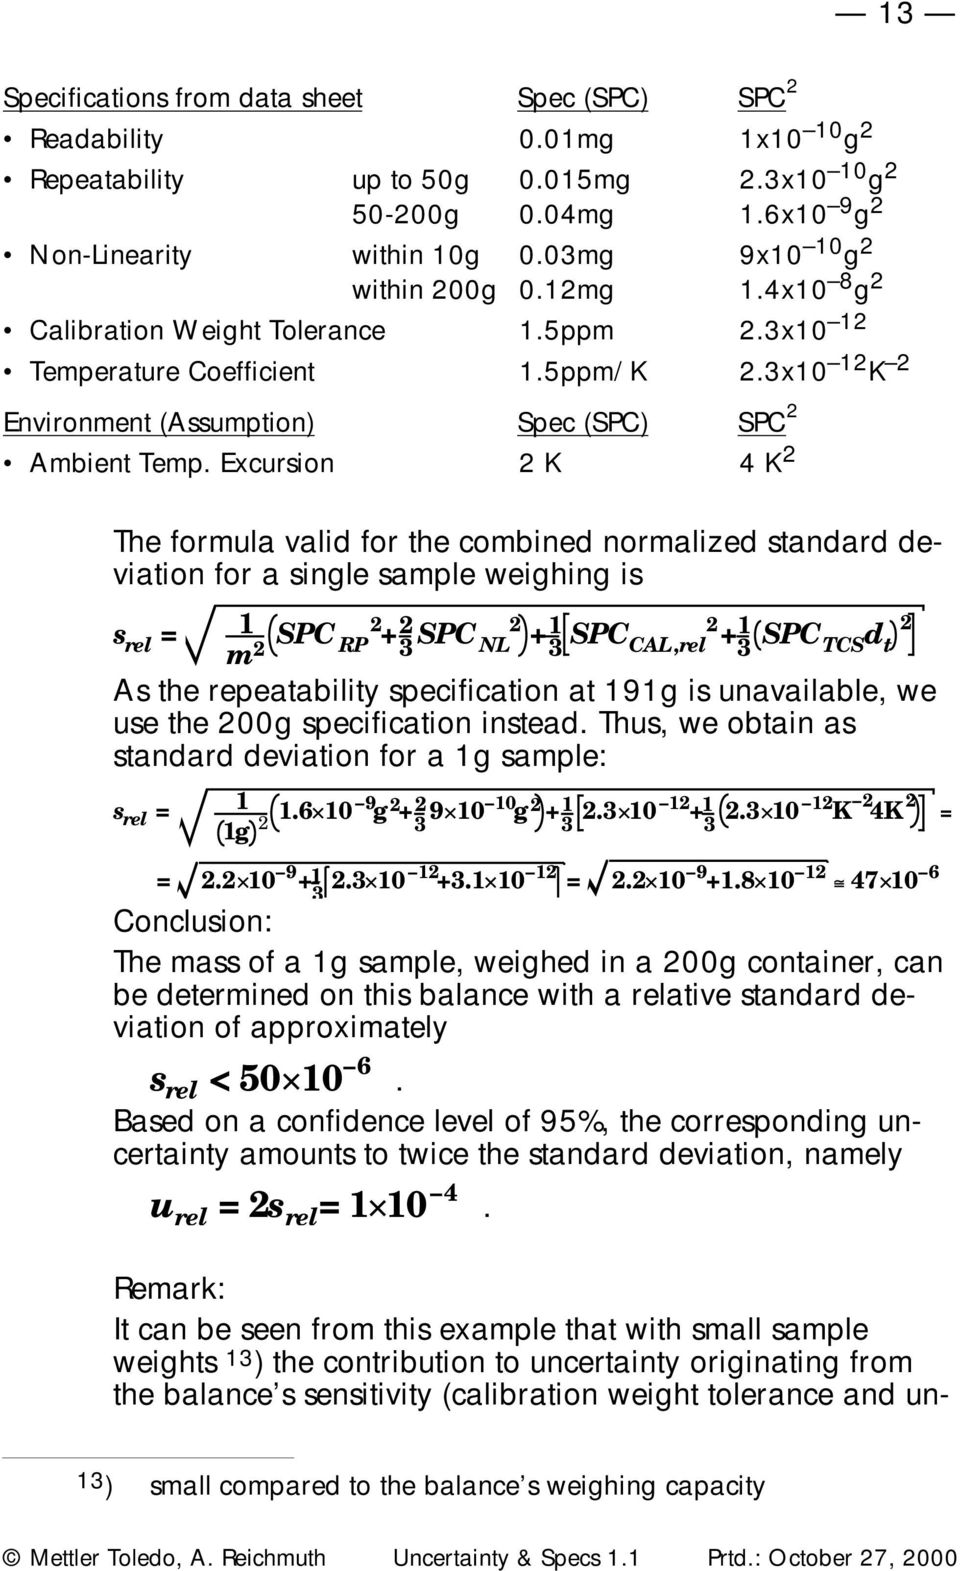 Excursion K 4 K The formula valid for the combined normalized standard deviation for a single sample weighing is s rel = 1 m SPC RP + 3 SPC NL + 3 1 SPC CAL,rel + 3 1 SPC TCS d t As the repeatability